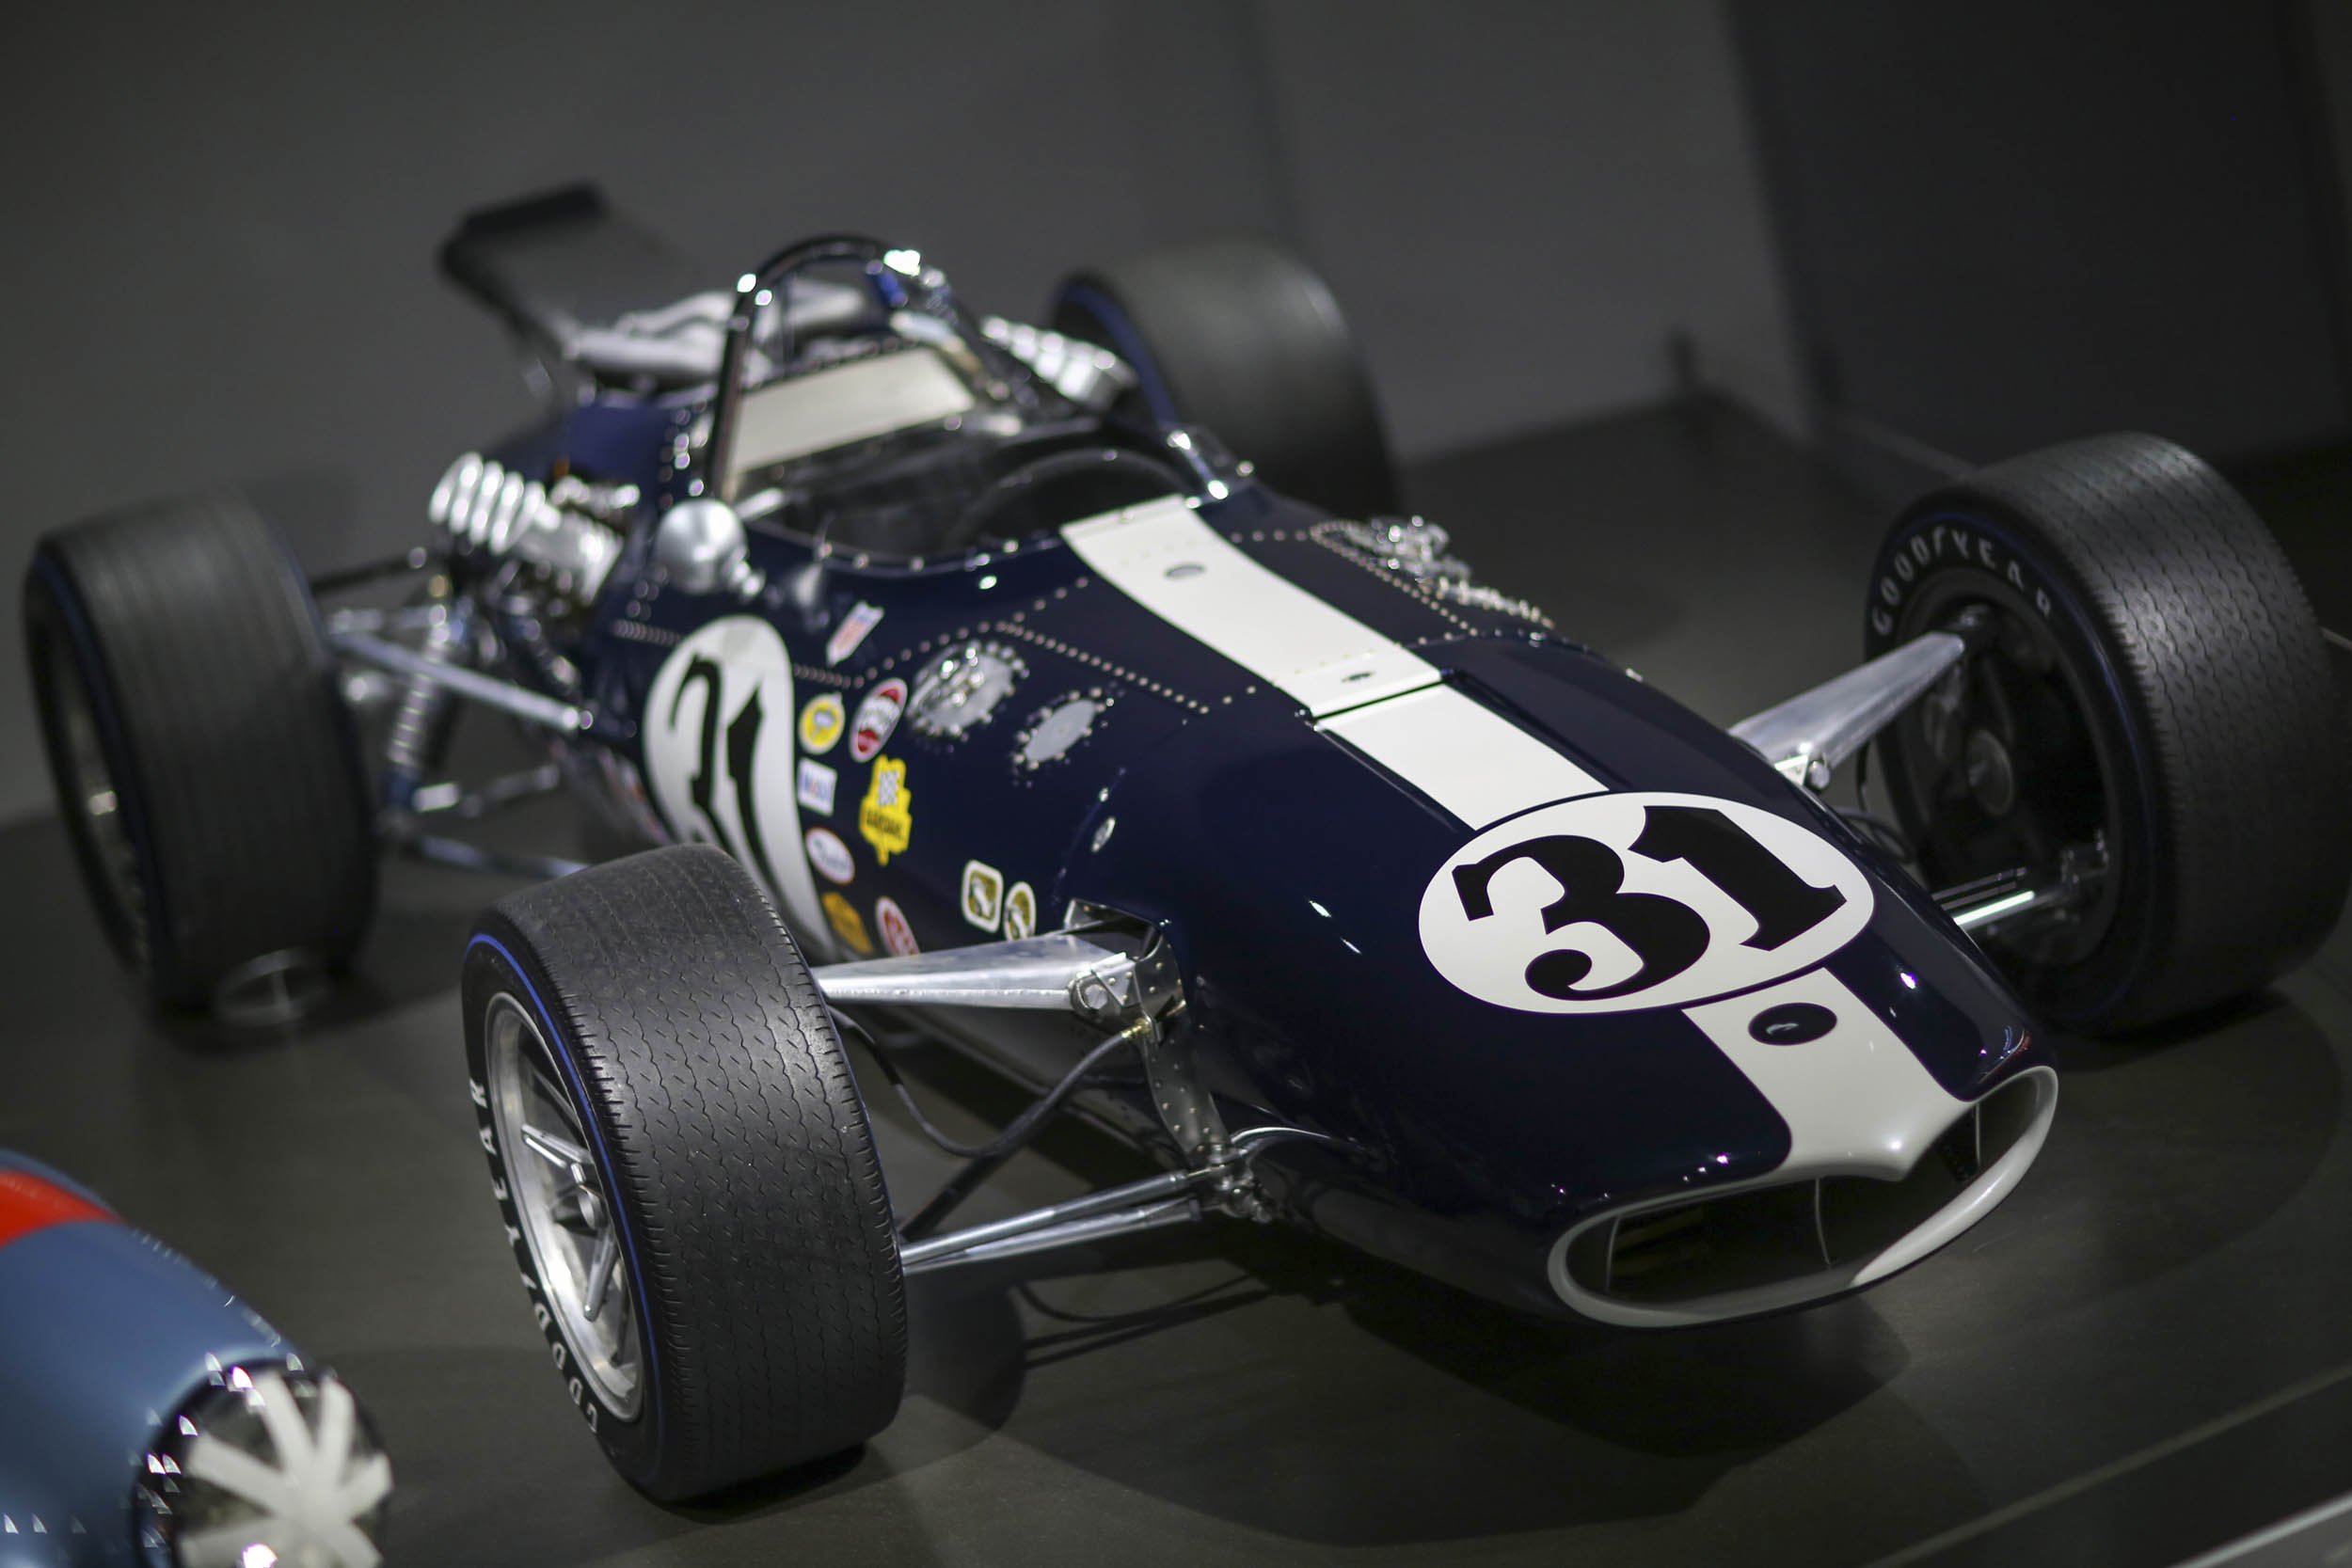 Built for the 1966 Indy 500 and piloted by Dan Gurney until a first-lap crash took it out of contention, this is the first All American Racer (AAR) Eagle that was built in the company's Santa Ana home